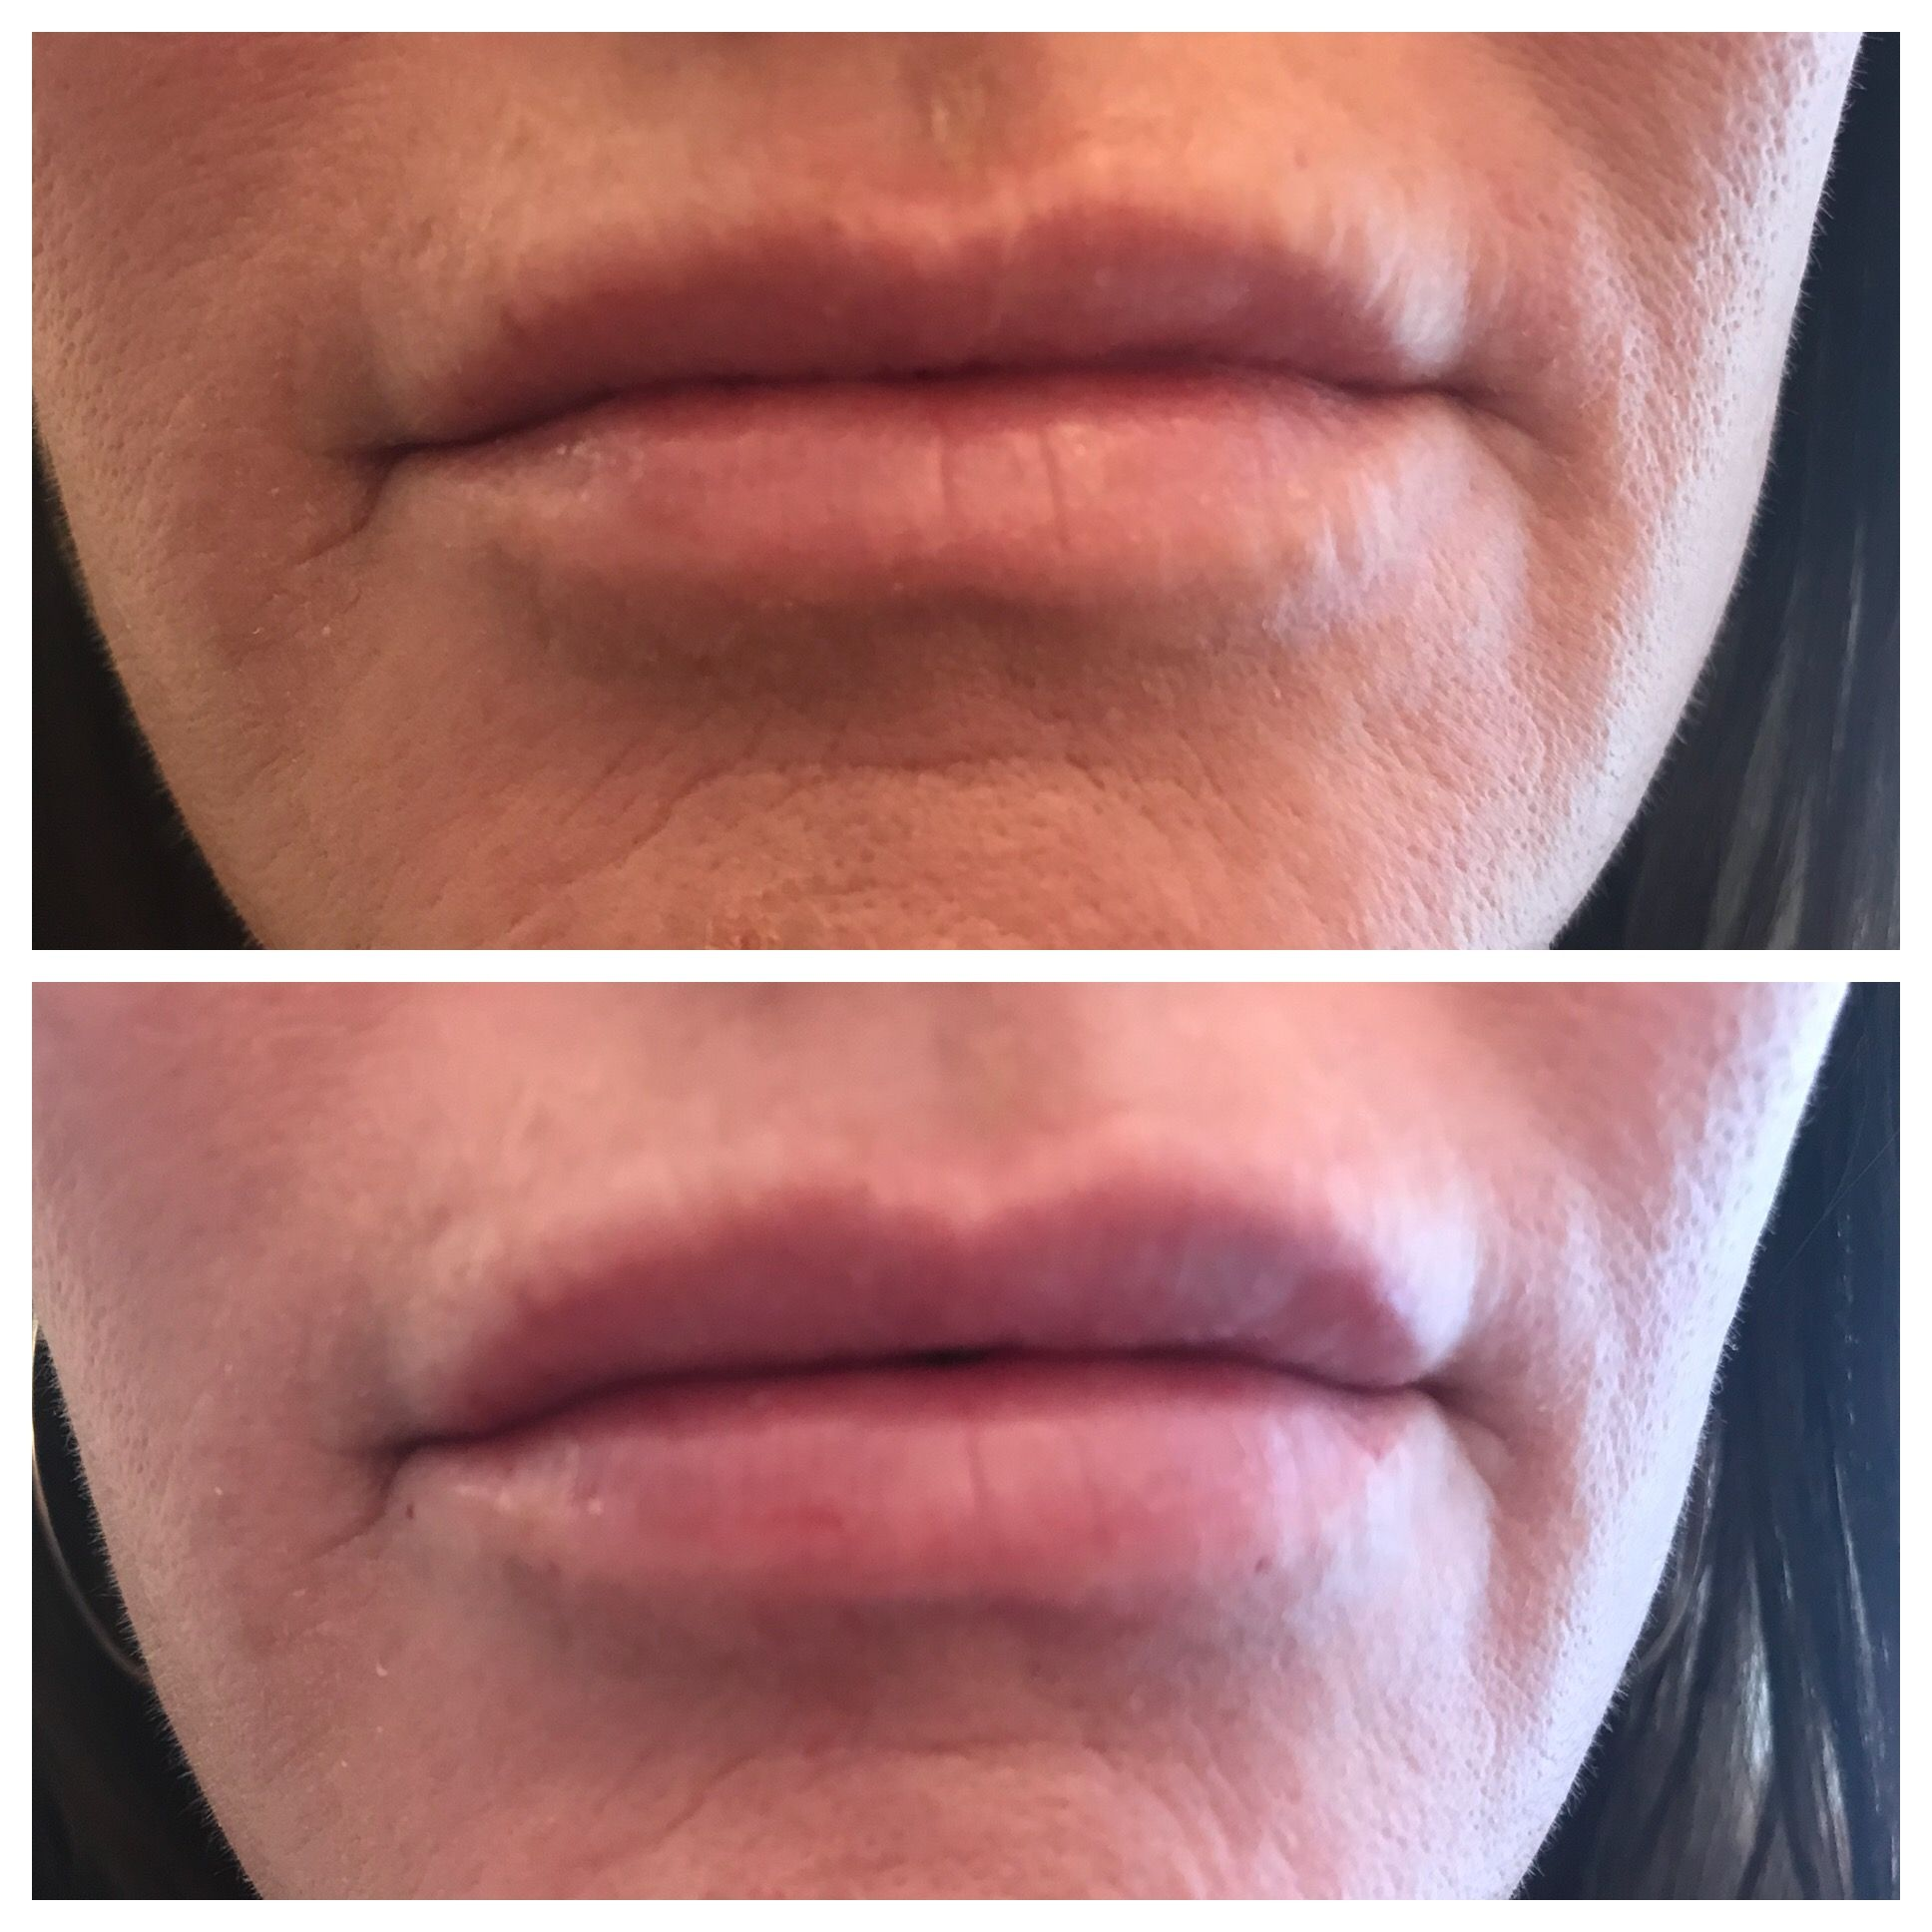 Lips touched up with #Restylane #Refyne  You look best when